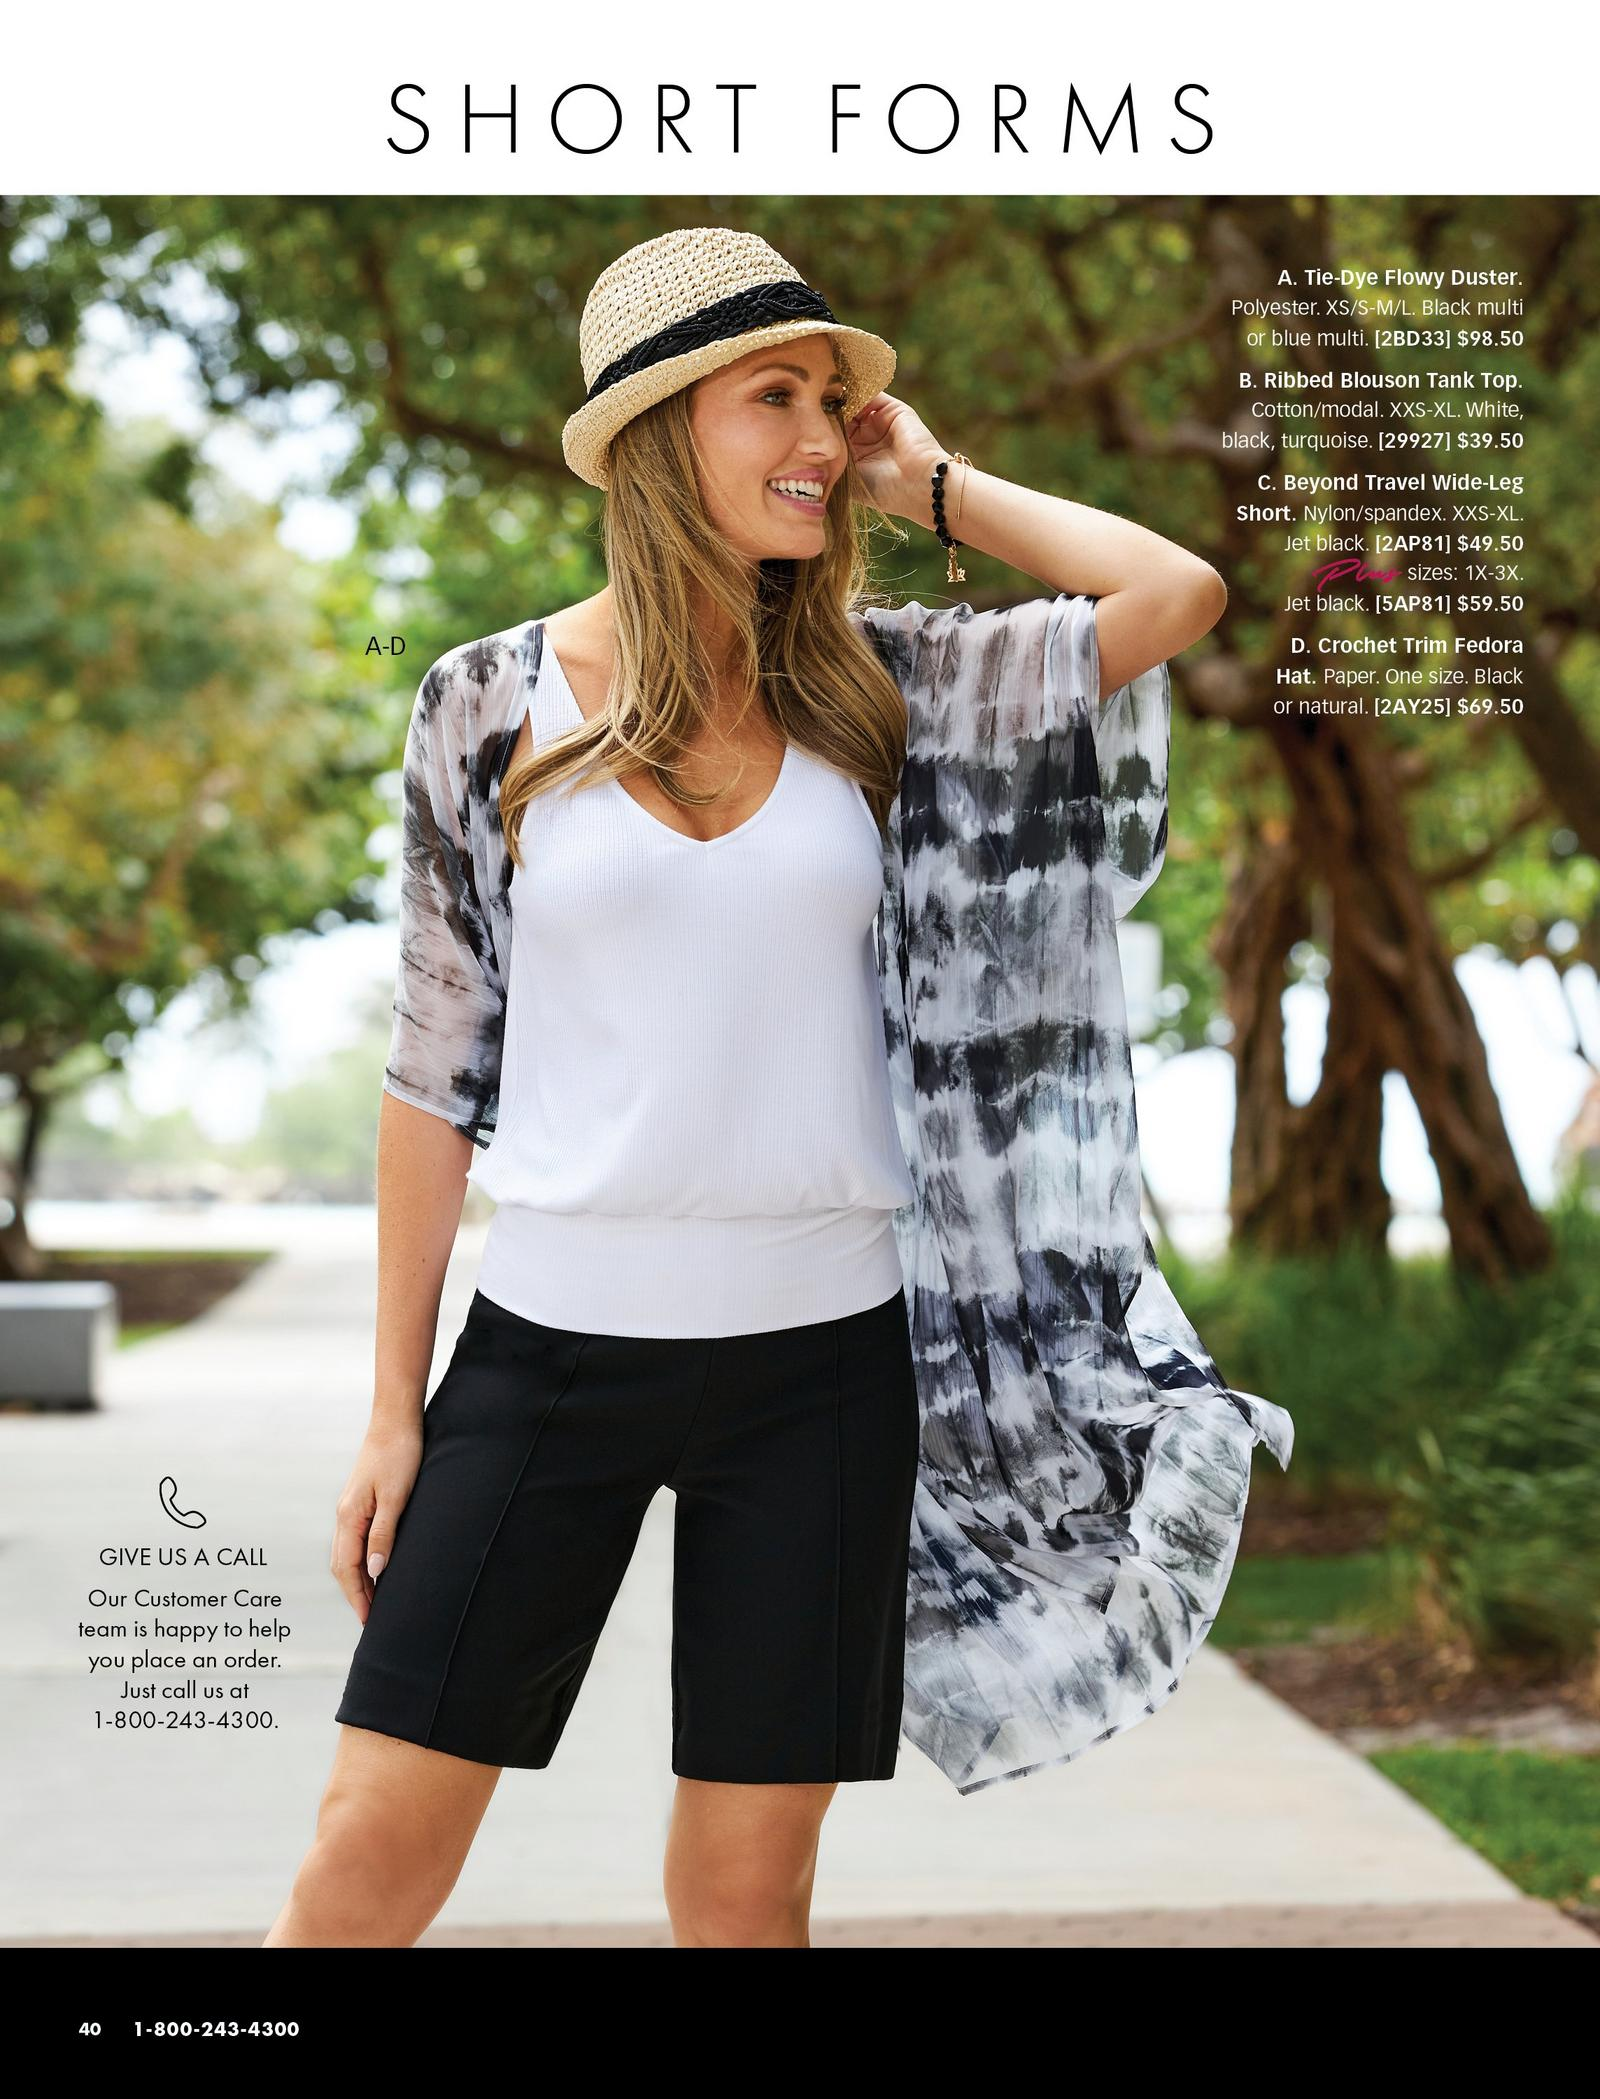 model wearing a black and white tie-dye duster, white blouson tank top, black shorts, and a straw hat with black lace detail.